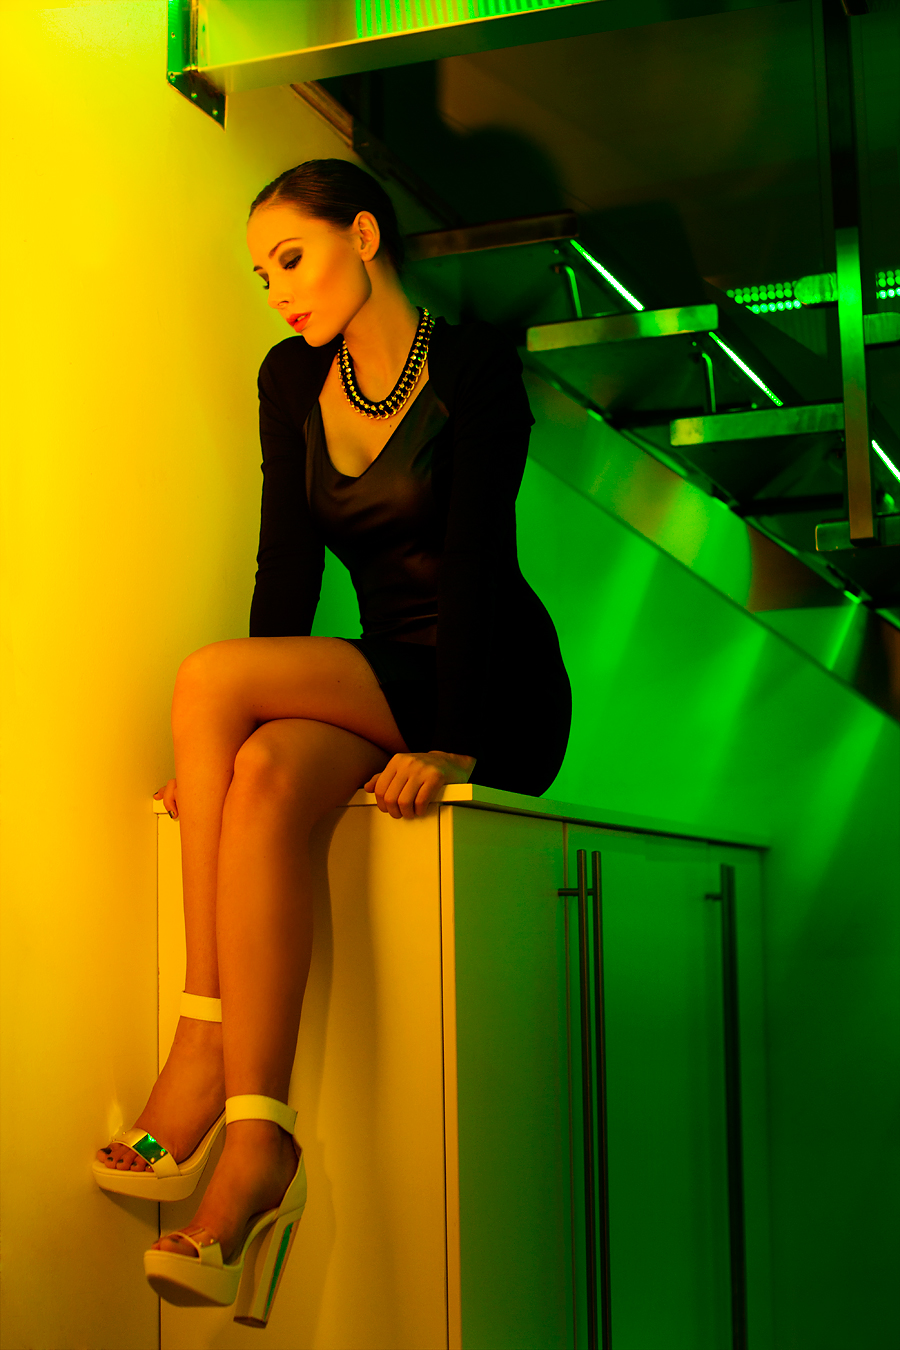 jeanett-haslien-blogg-foto-maddepaddee-ivyrevel-photography-rgb-colors-reflection-05